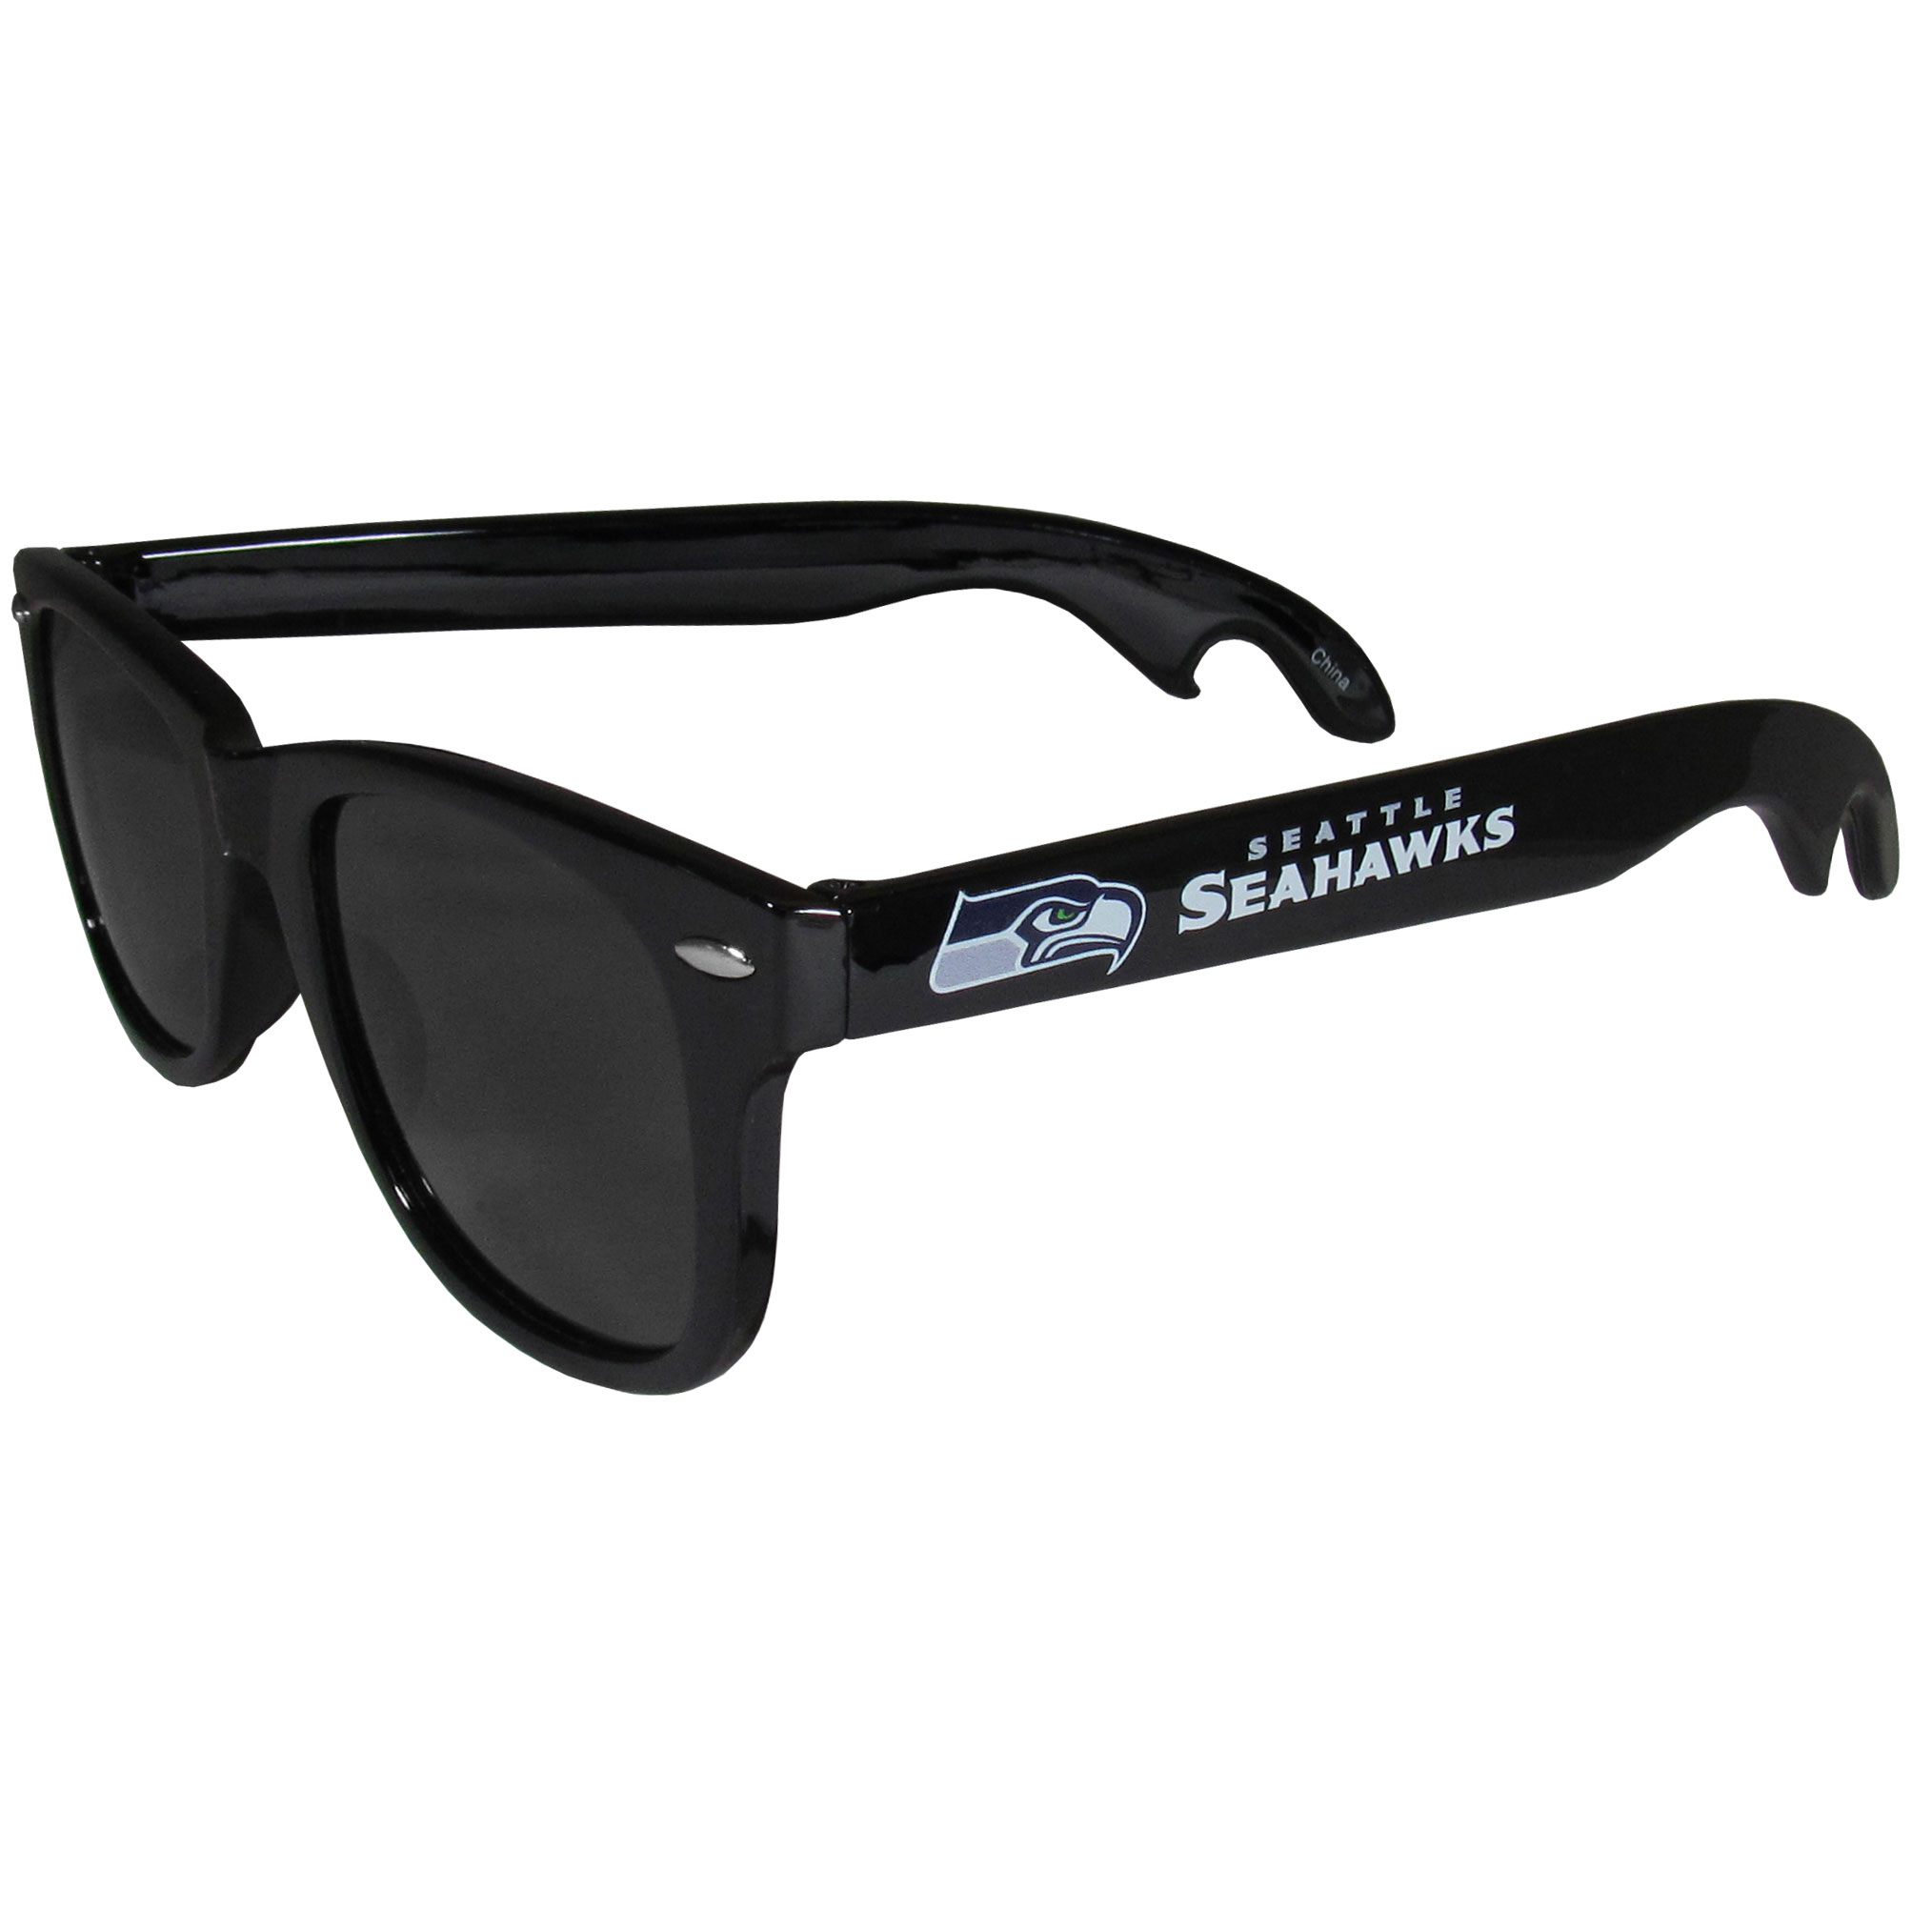 Seattle Seahawks Beachfarer Bottle Opener Sunglasses - Seriously, these sunglasses open bottles! Keep the party going with these amazing Seattle Seahawks bottle opener sunglasses. The stylish retro frames feature team designs on the arms and functional bottle openers on the end of the arms. Whether you are at the beach or having a backyard BBQ on game day, these shades will keep your eyes protected with 100% UVA/UVB protection and keep you hydrated with the handy bottle opener arms.